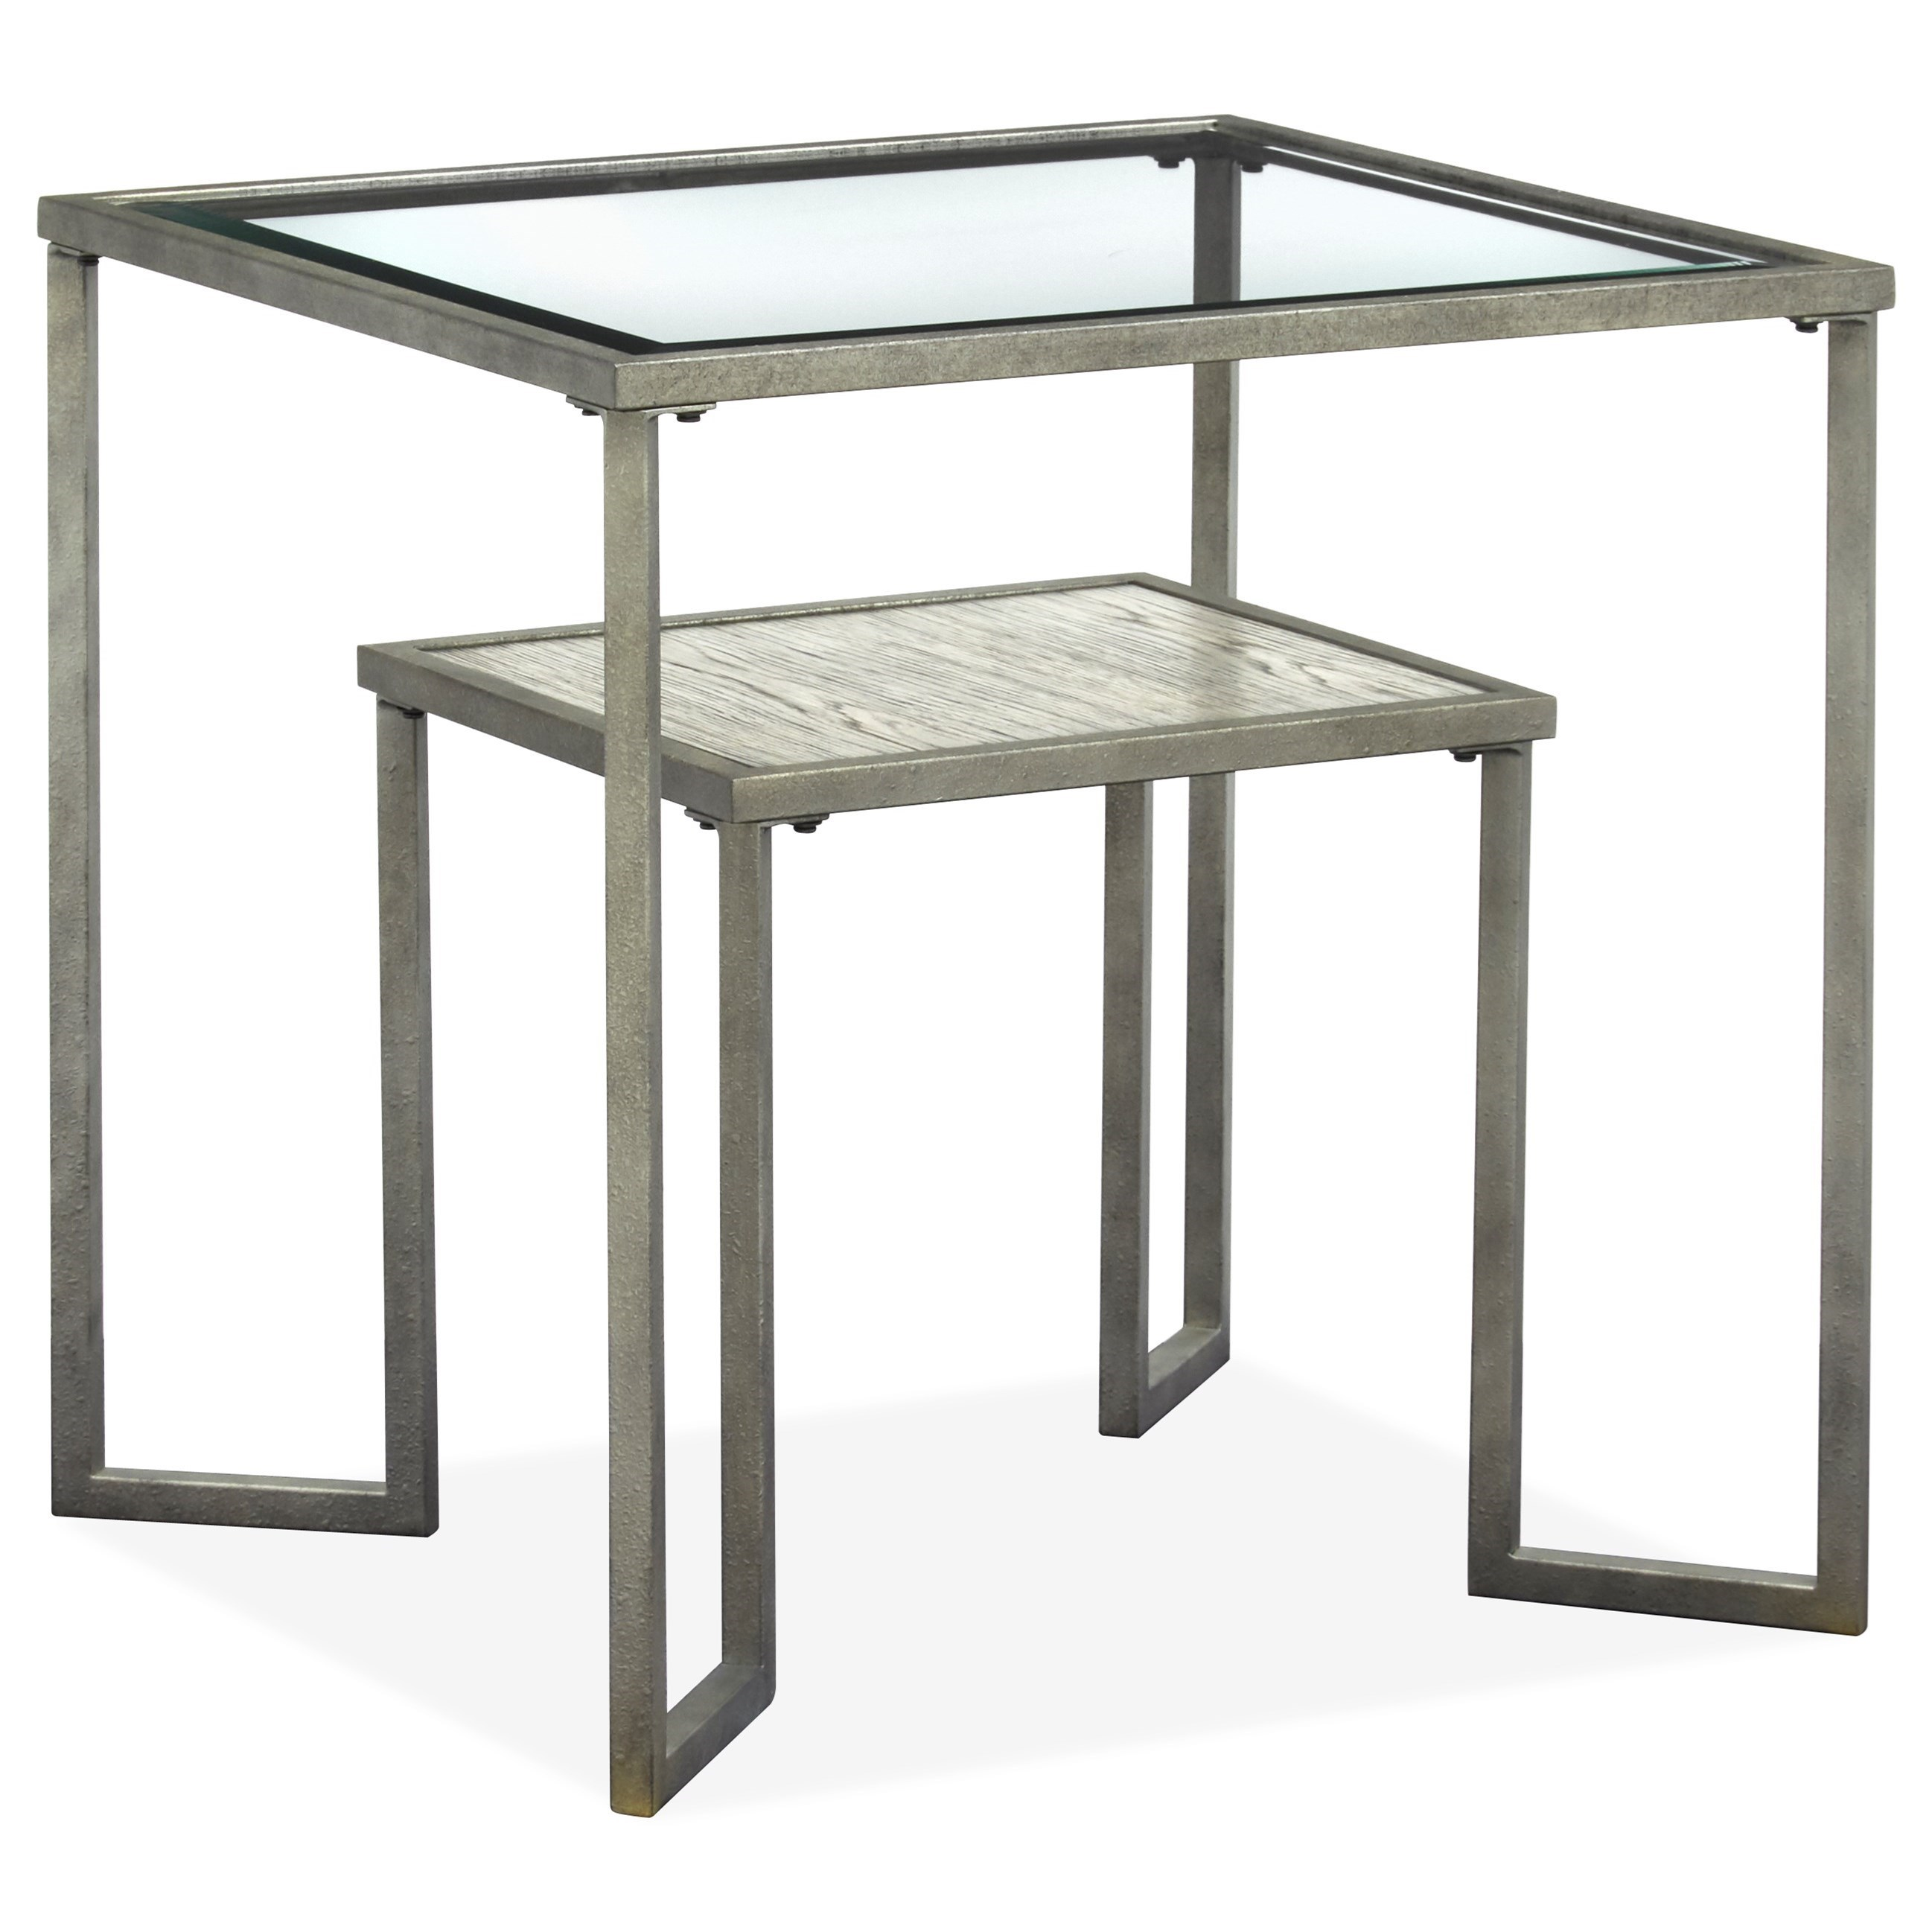 Bendishaw Square End Table by Magnussen Home at Baer's Furniture